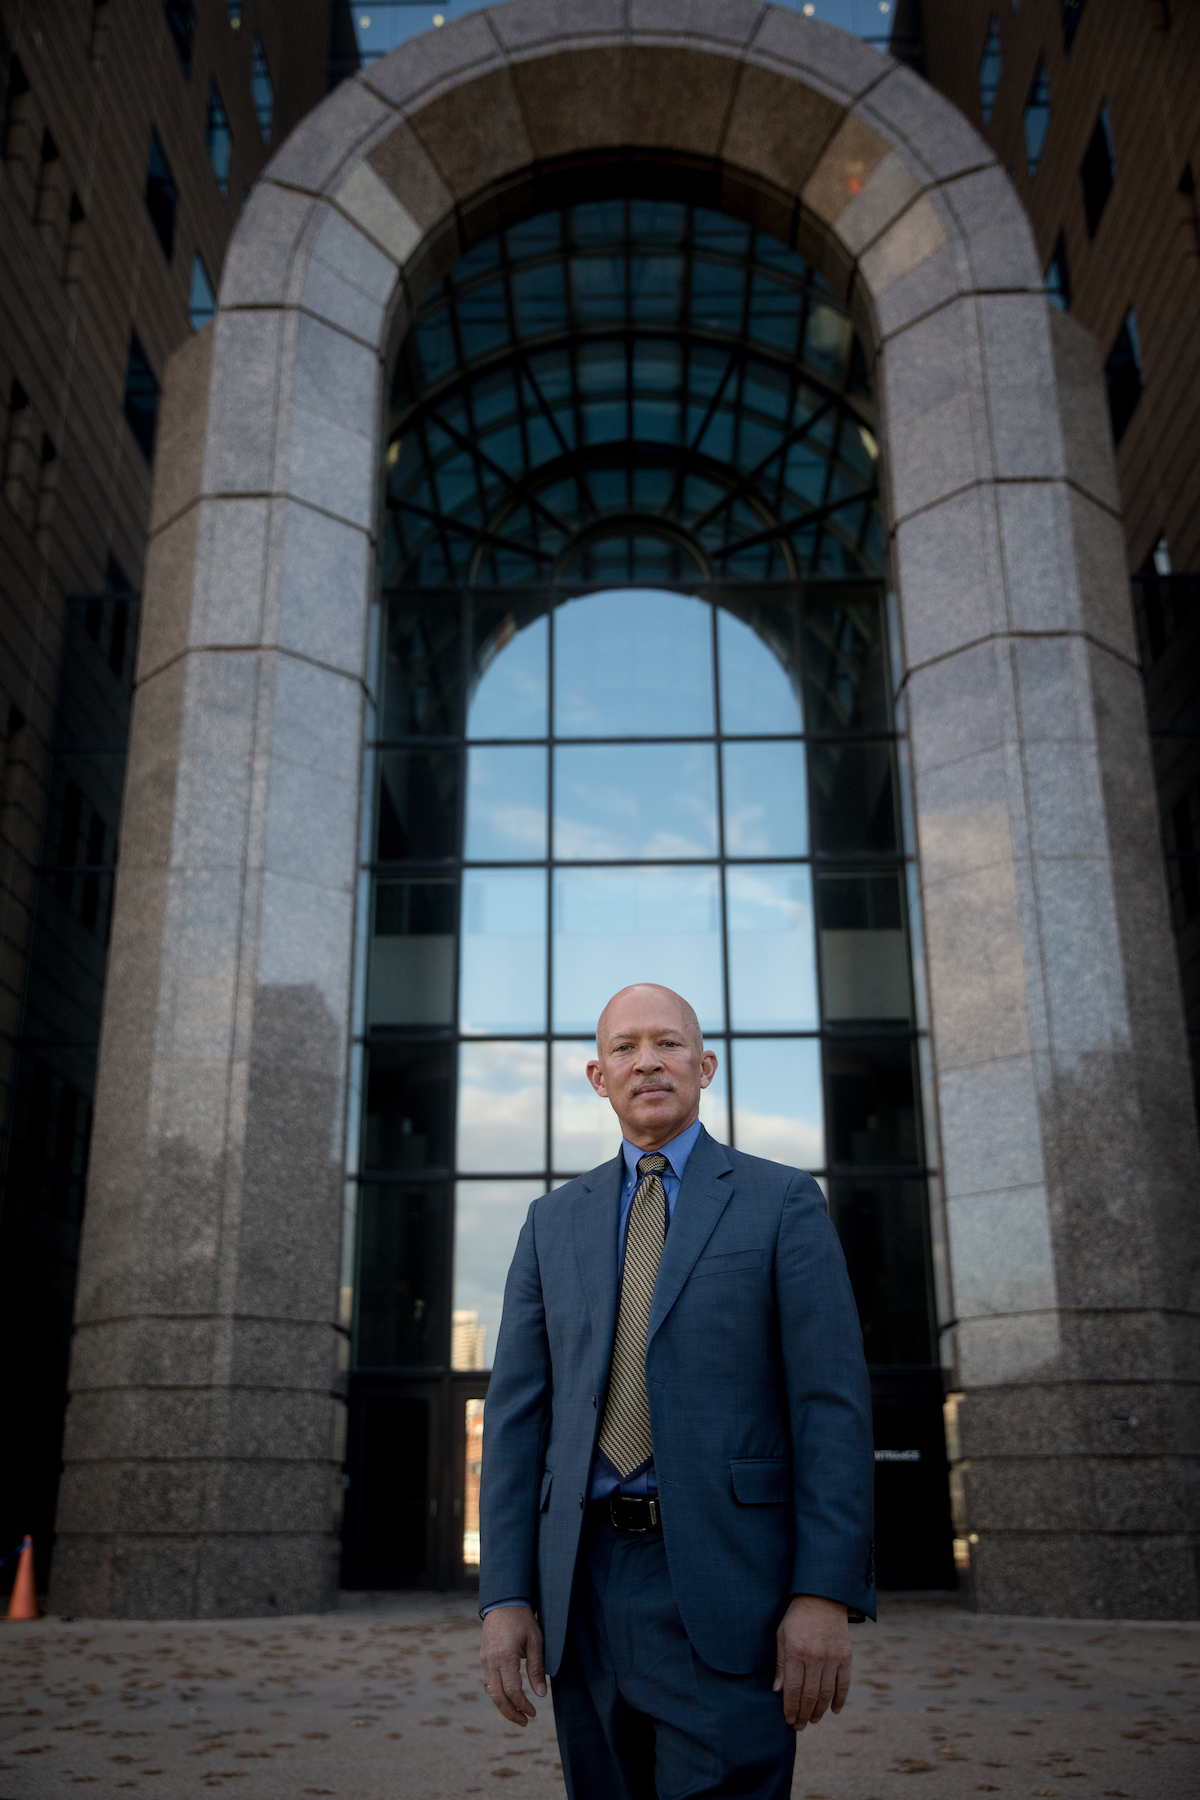 Dallas County District Attorney-elect, John Creuzot, poses for a portrait outside the Frank Crowley Courts Building. (Photo: Allison V. Smith)